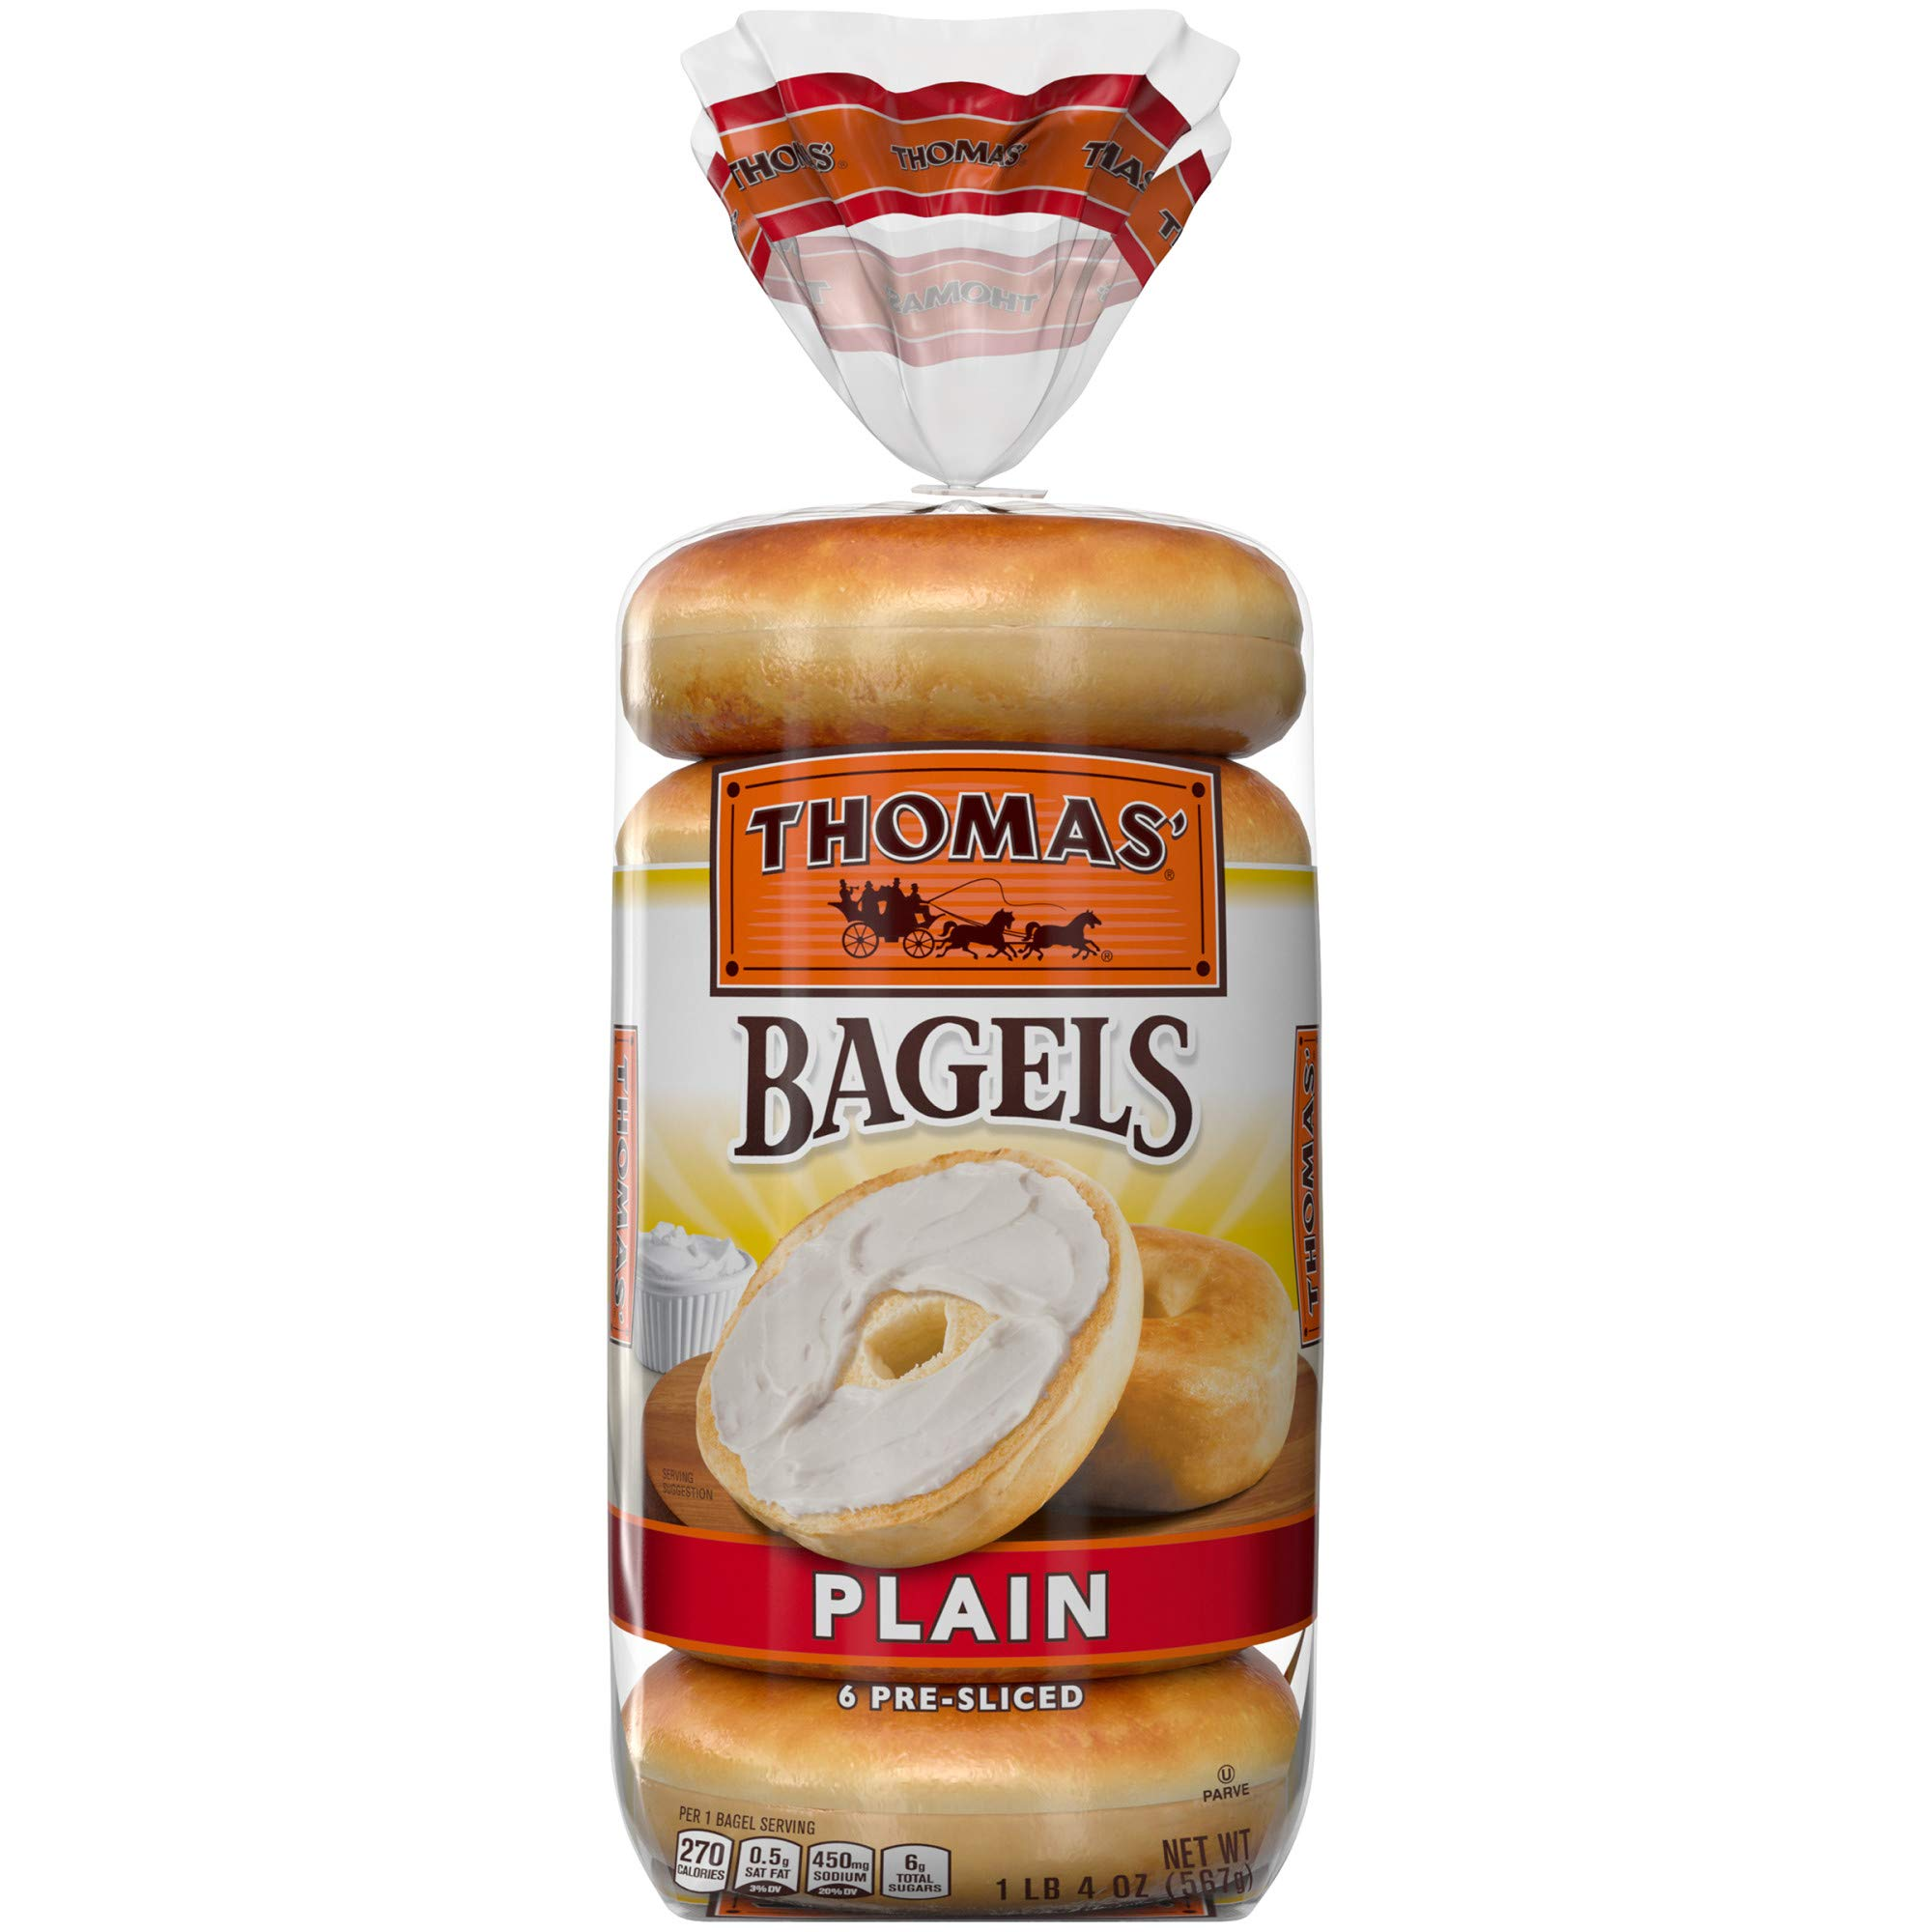 Thomas' Plain Soft & Chewy Pre-Sliced Bagels, 6 count, 3.35 Oz